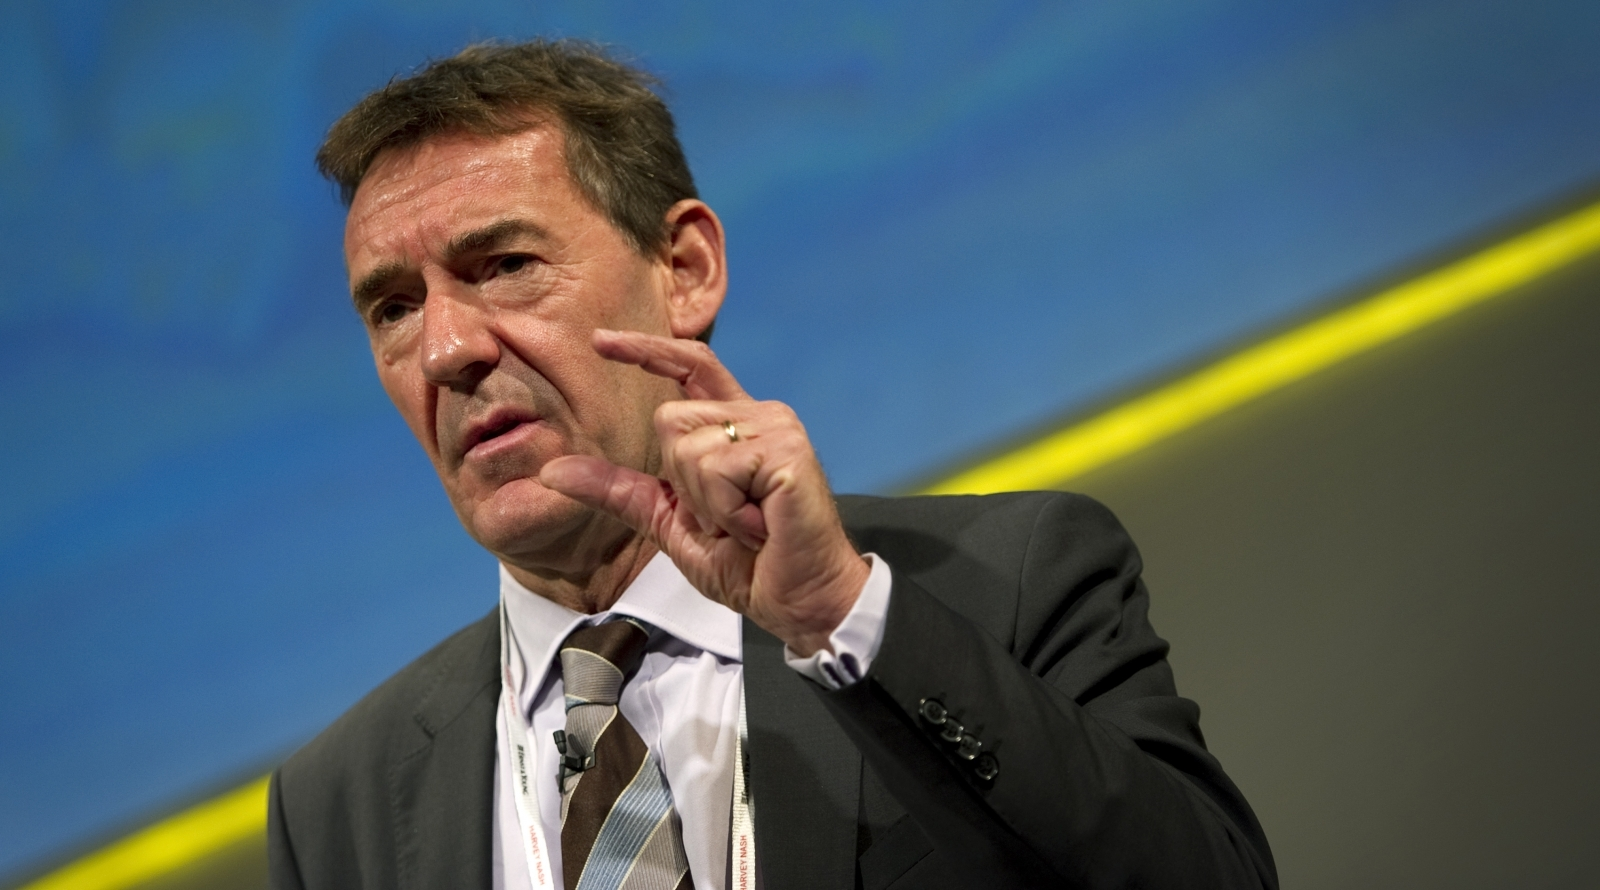 Lord Jim O'Neill says the UK is in well placed for growth despite Brexit due to rises in global trade